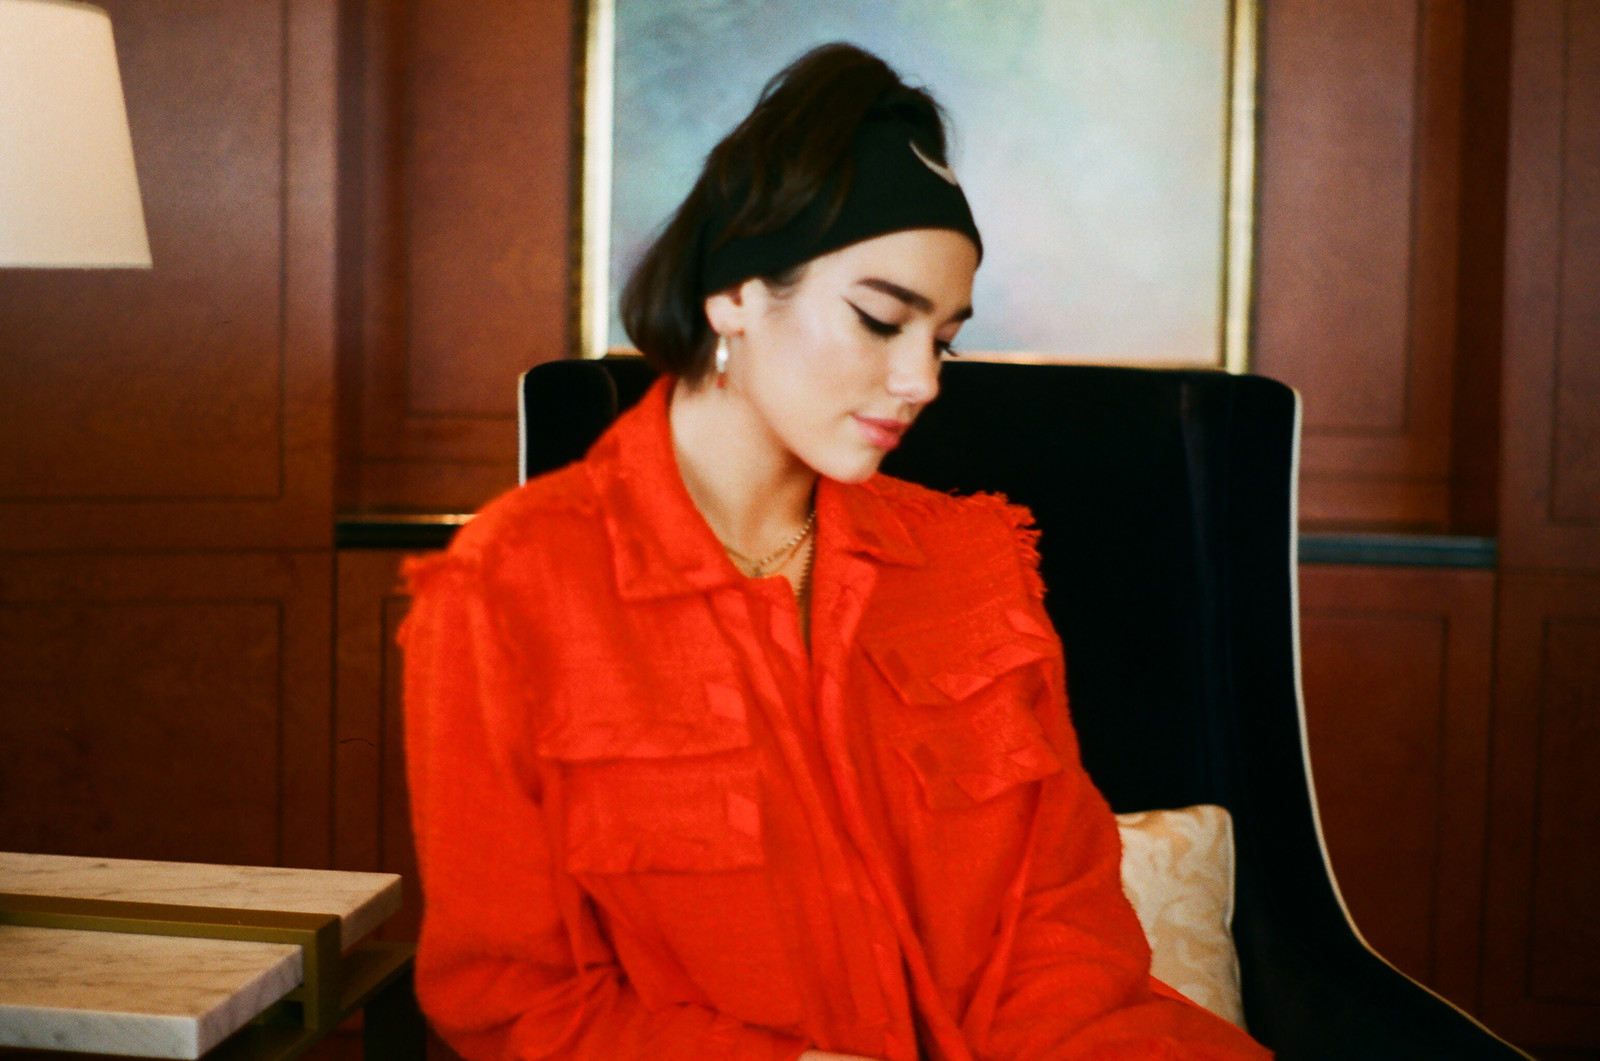 Dua Lipa on Career, Music and Her Upcoming Album Interview Fashion Advice Frank Ocean IDGAF Hotter than Hell Tour One Kiss Calvin Harris Collaboration Music Musician